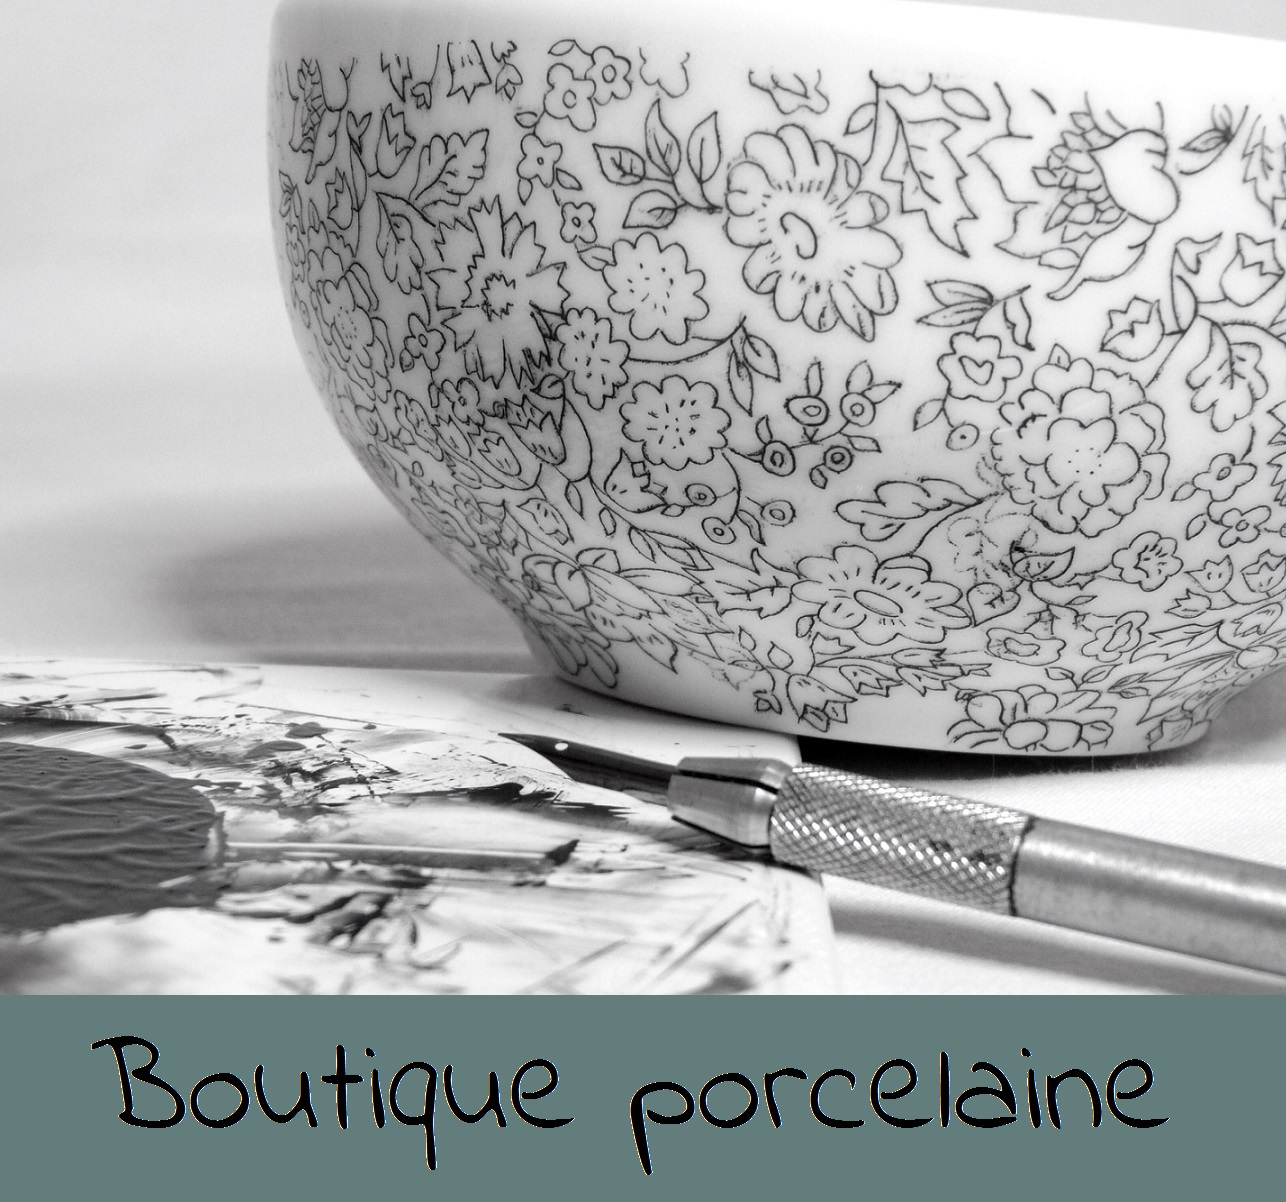 boutique porcelaine